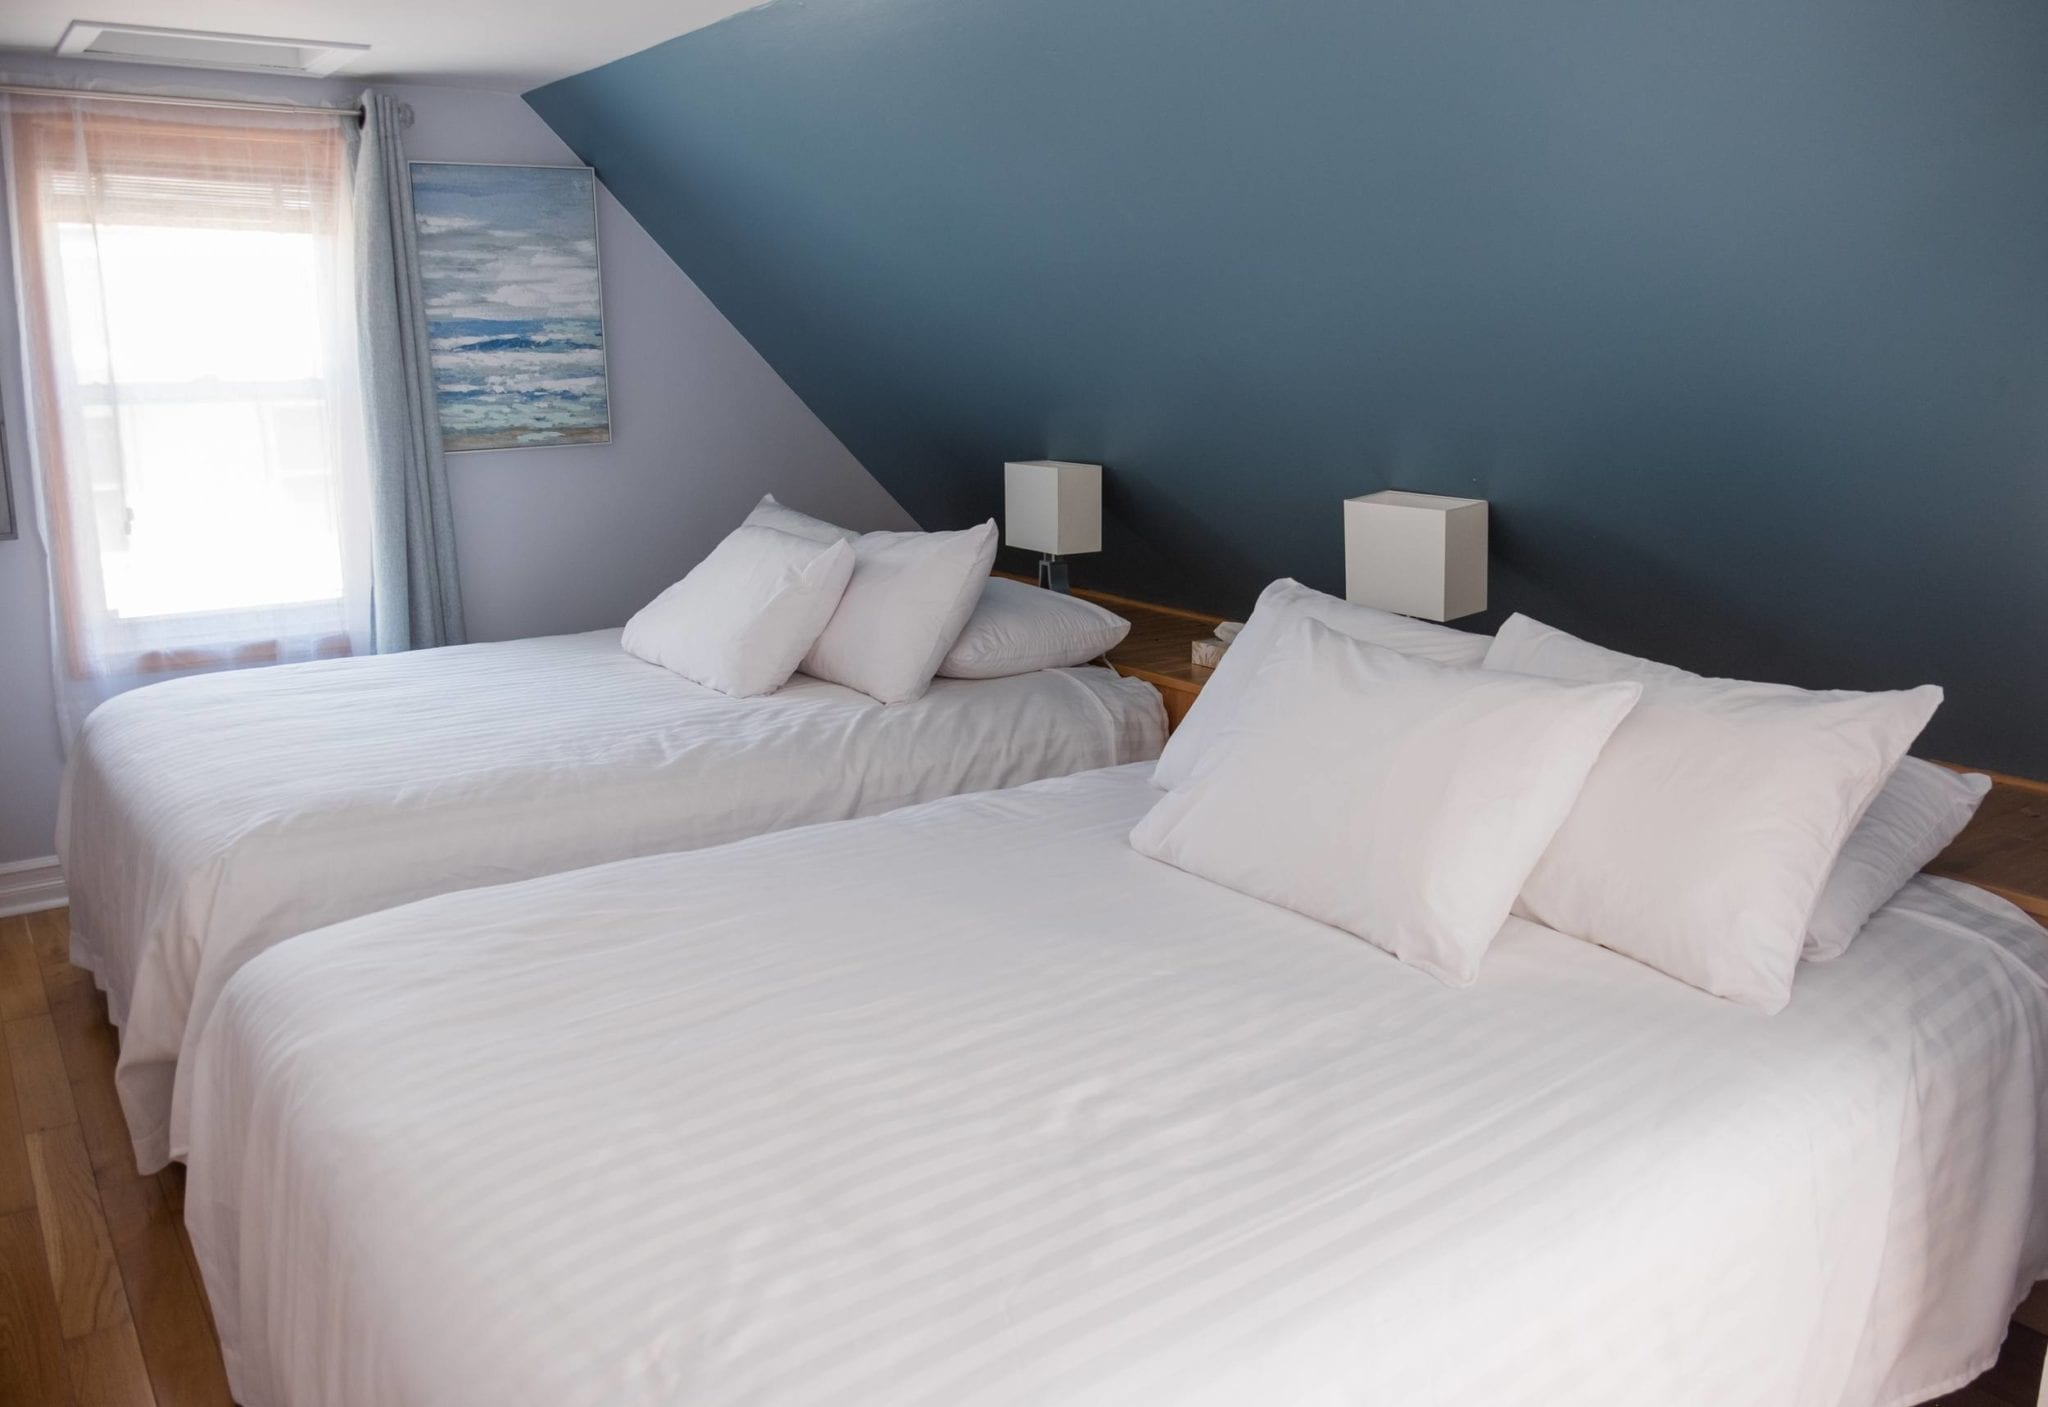 Two queen beds in white bedding with lots of pillows in Silver Linings Inn, Cheticamp, Nova Scotia.